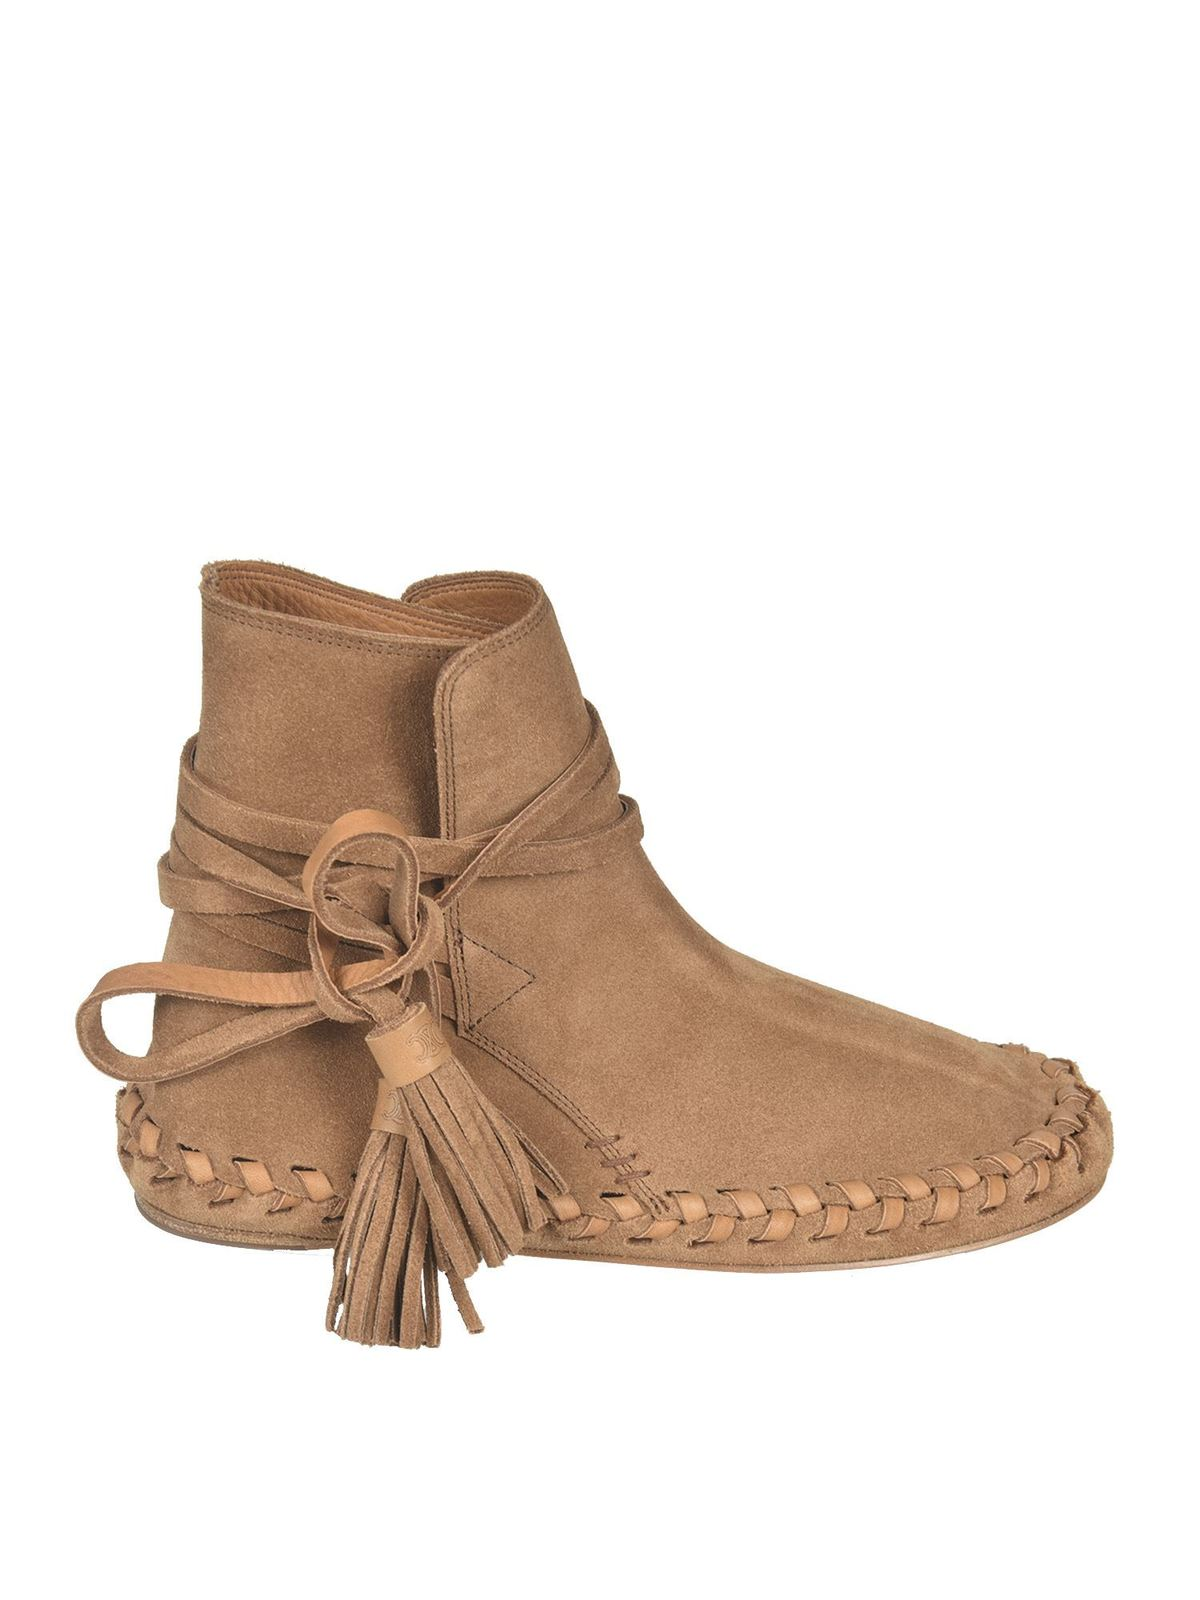 Celine MARLOU ANKLE BOOTS IN BROWN